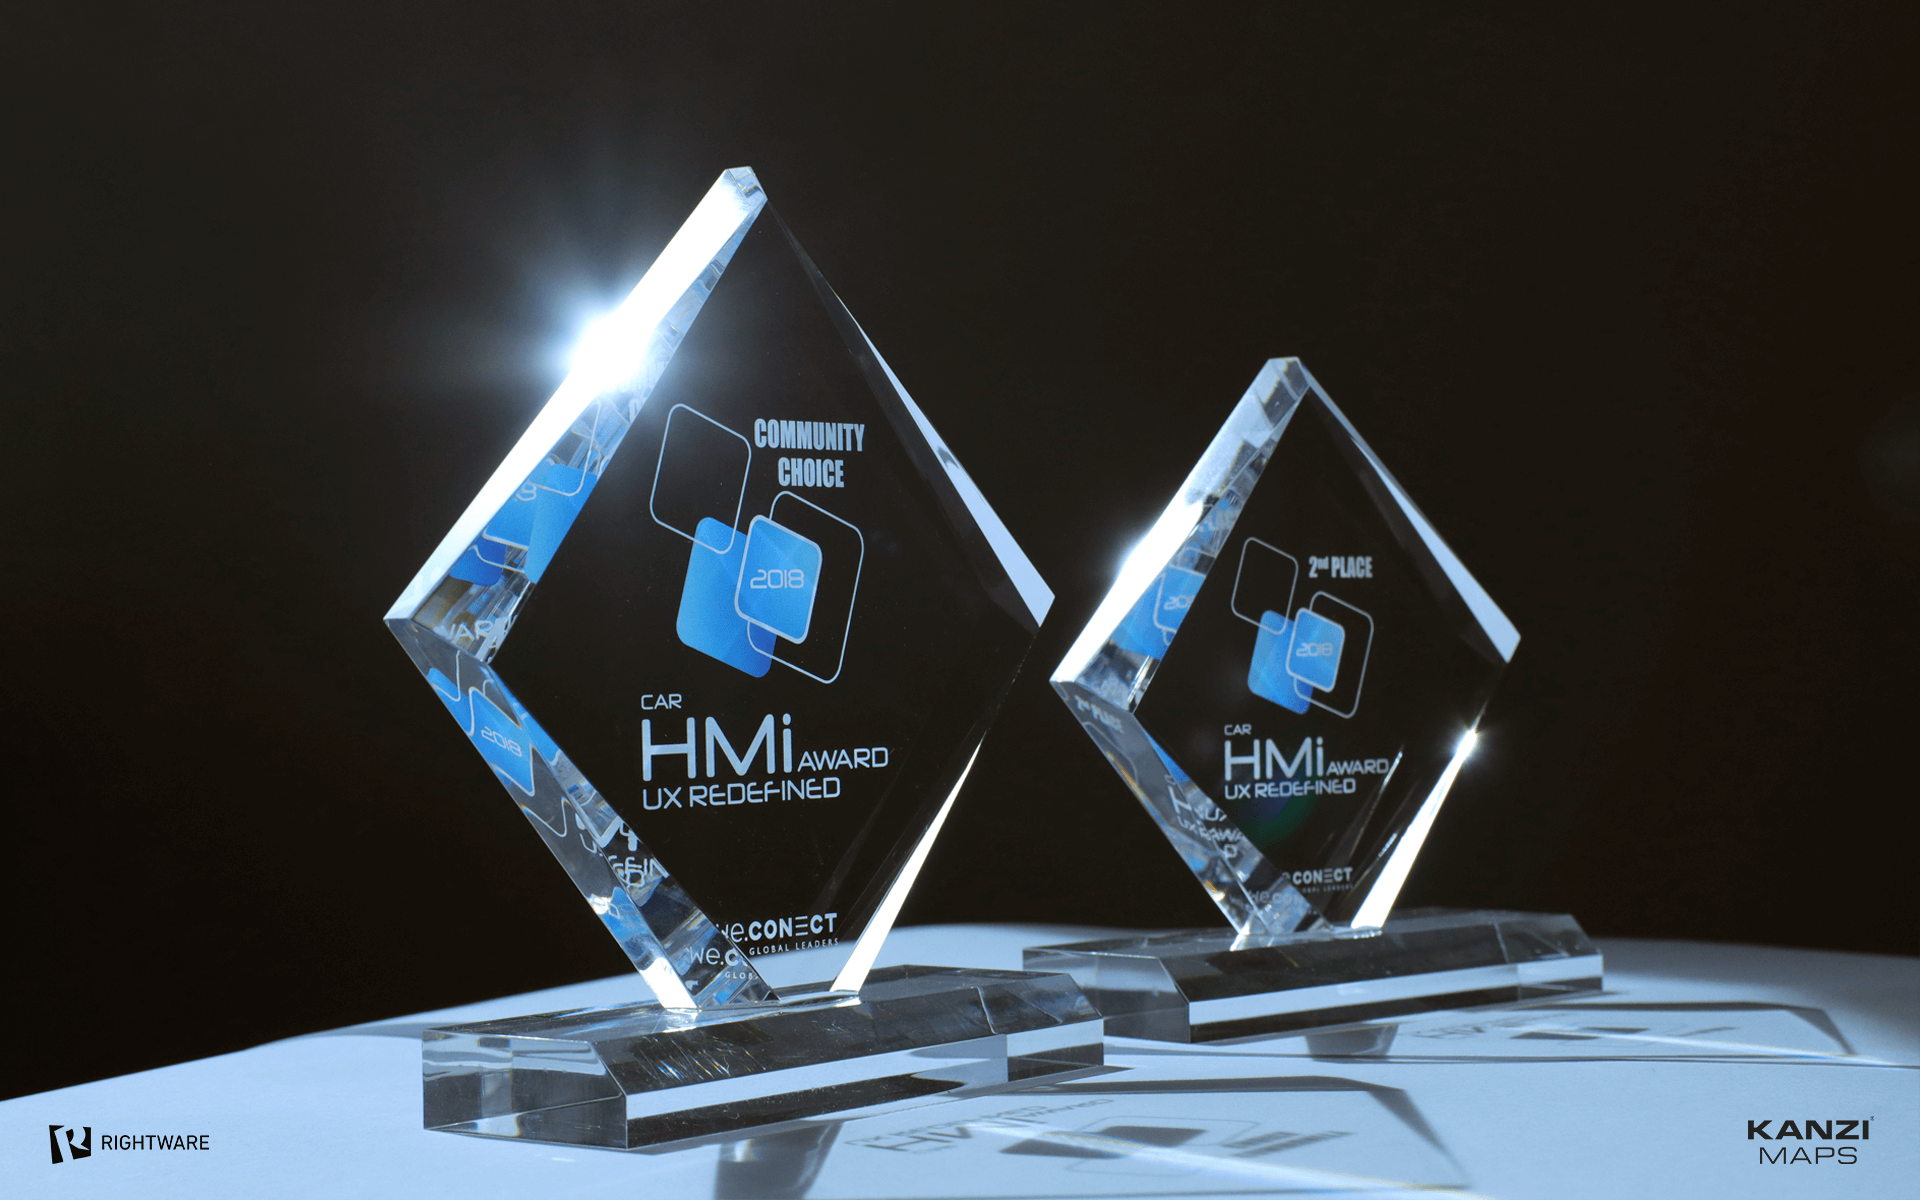 HMI_award_1920x1200_02_withlogo